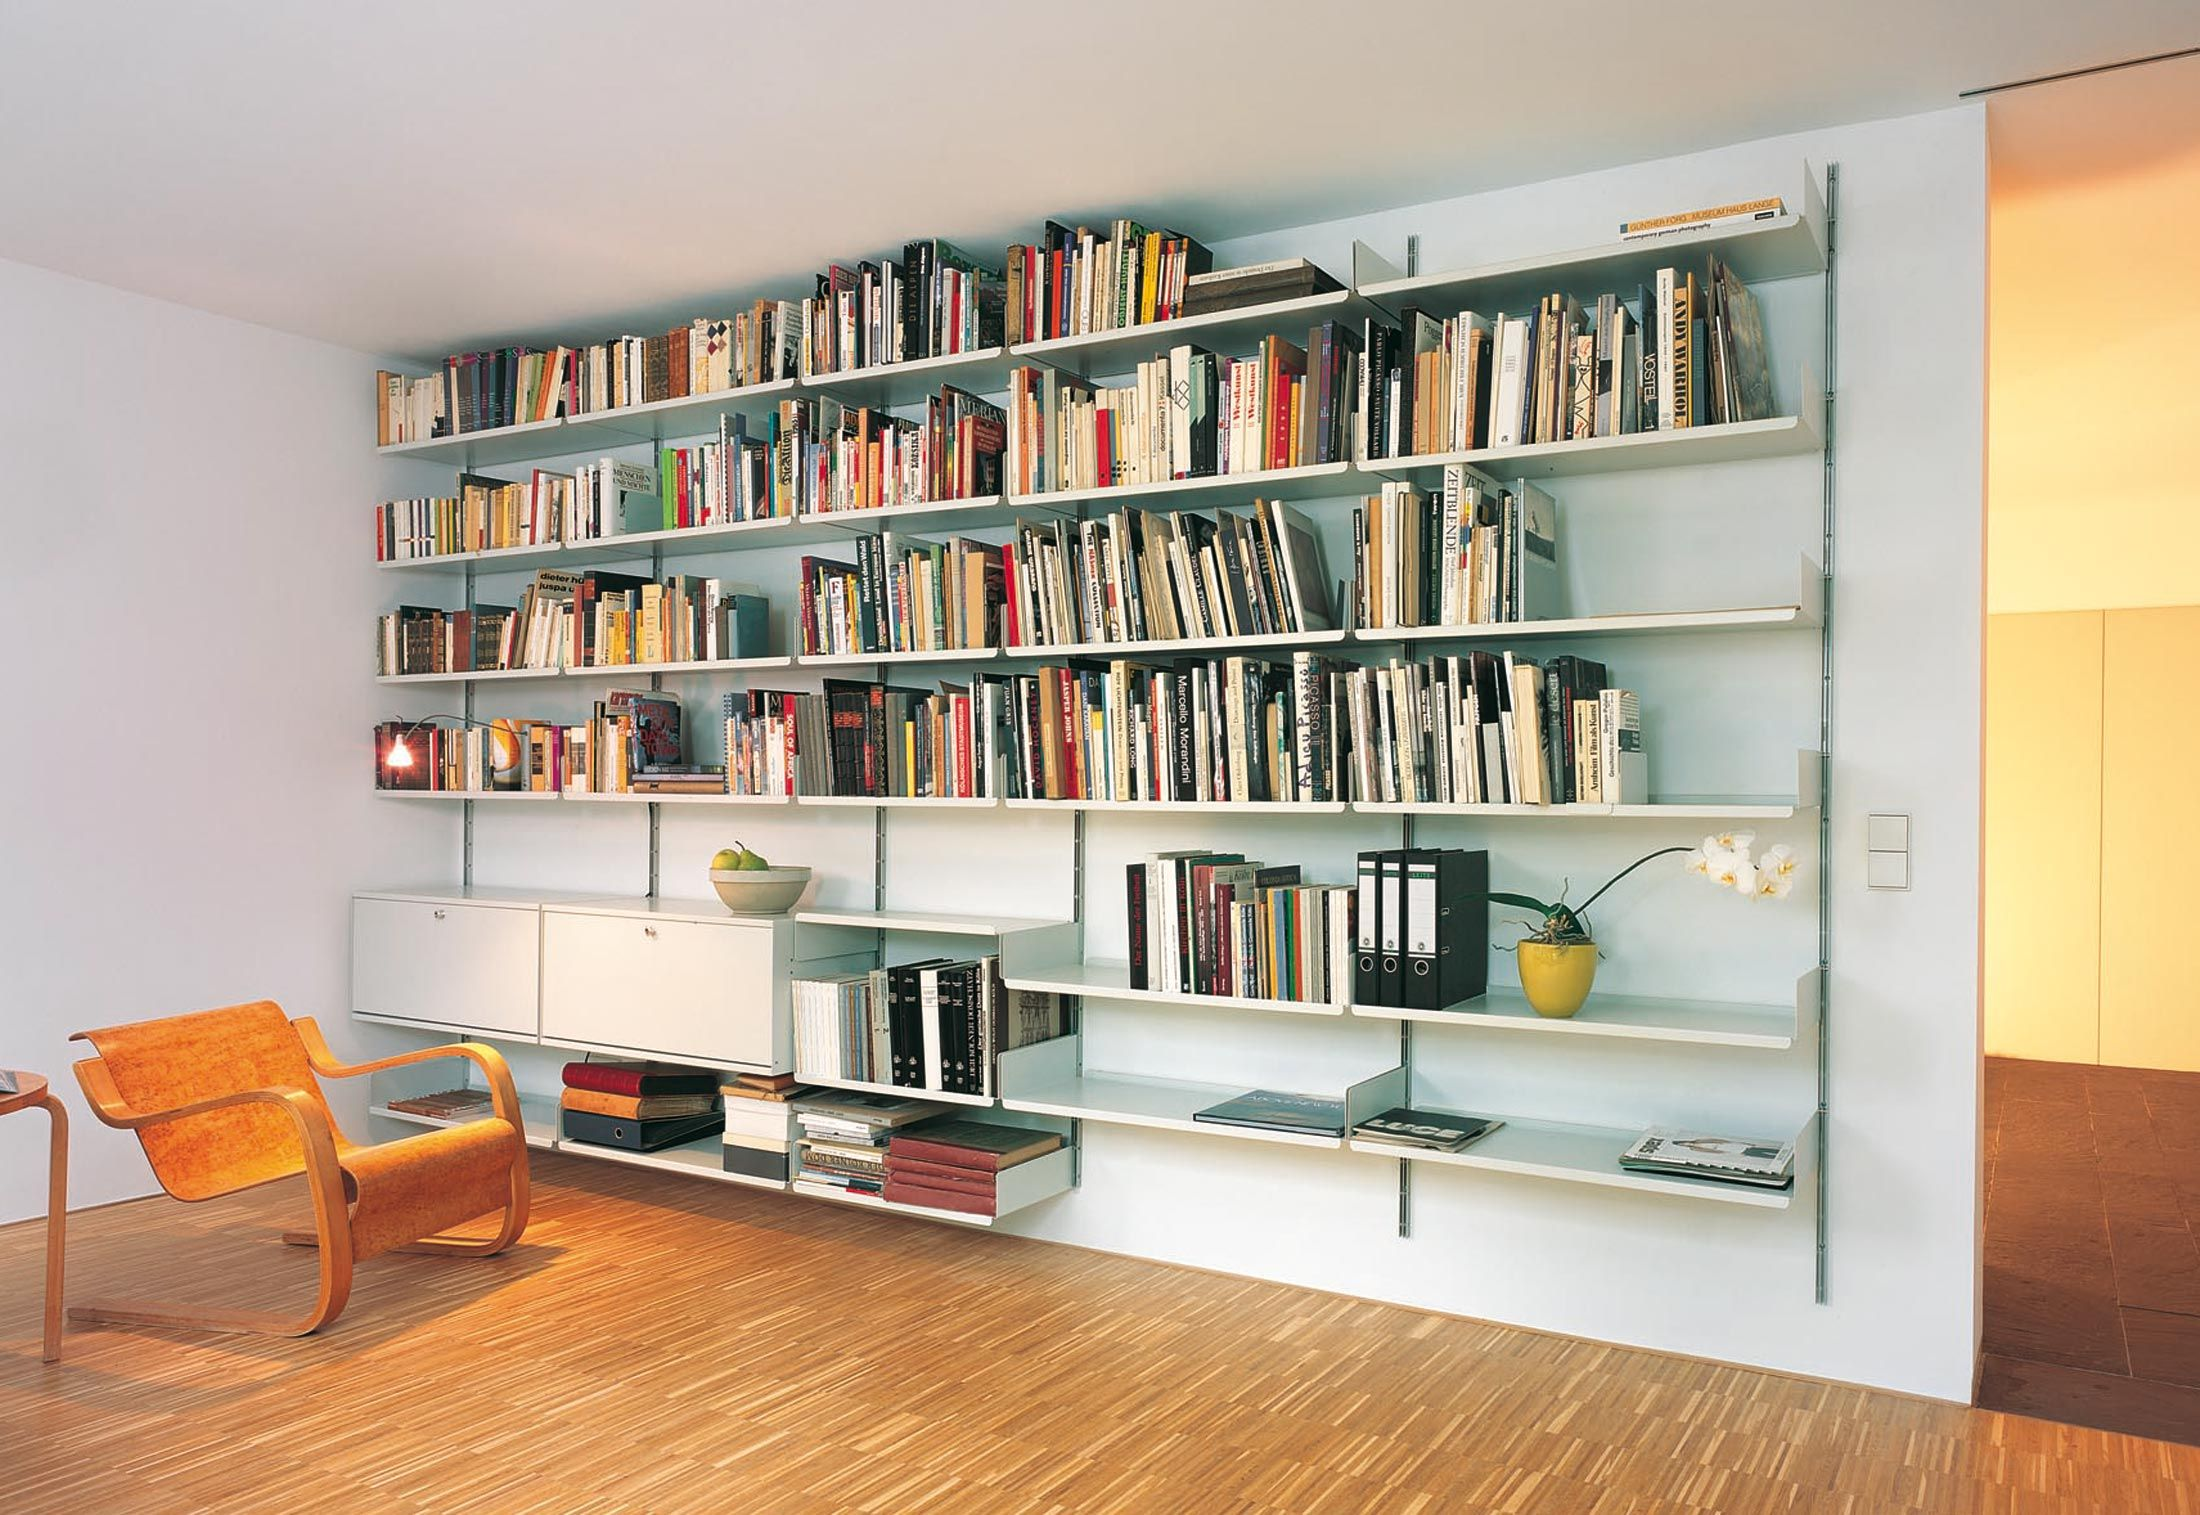 Shelving system. Classic and clean